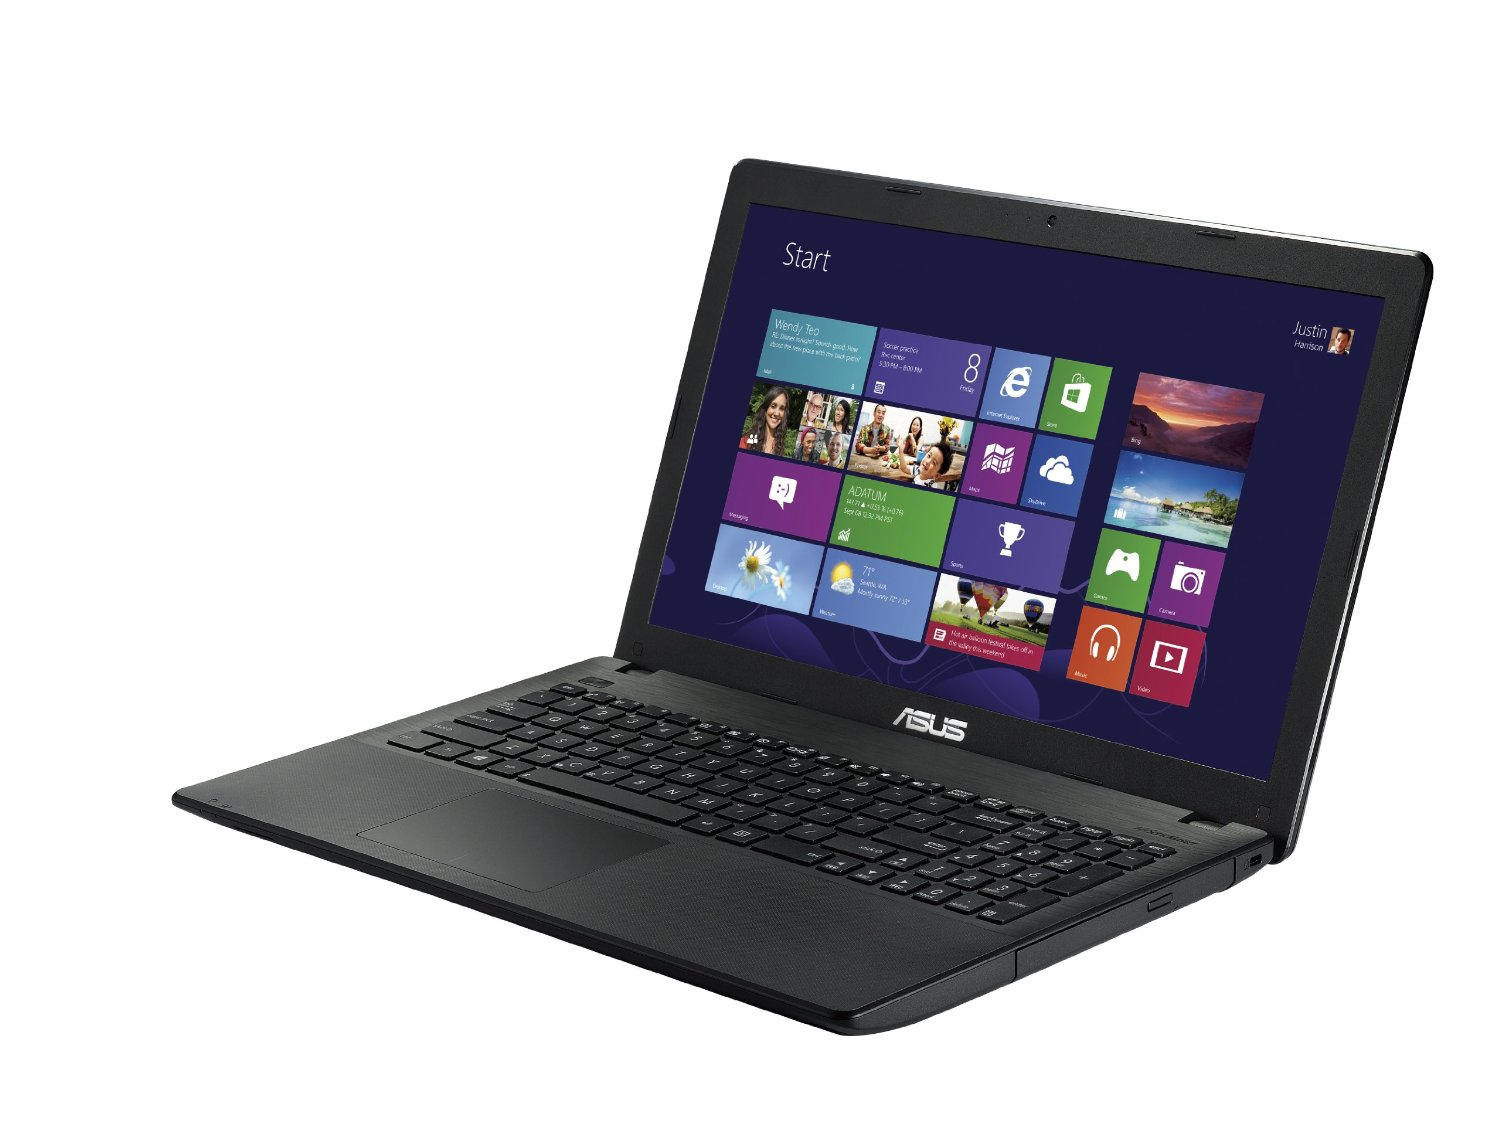 "Asus X551MAV-SX970H Notebook, LCD 15.6"" HD, Processore Intel Celeron N2840, RAM 4 GB, Hard Disk 500 GB, Nero"